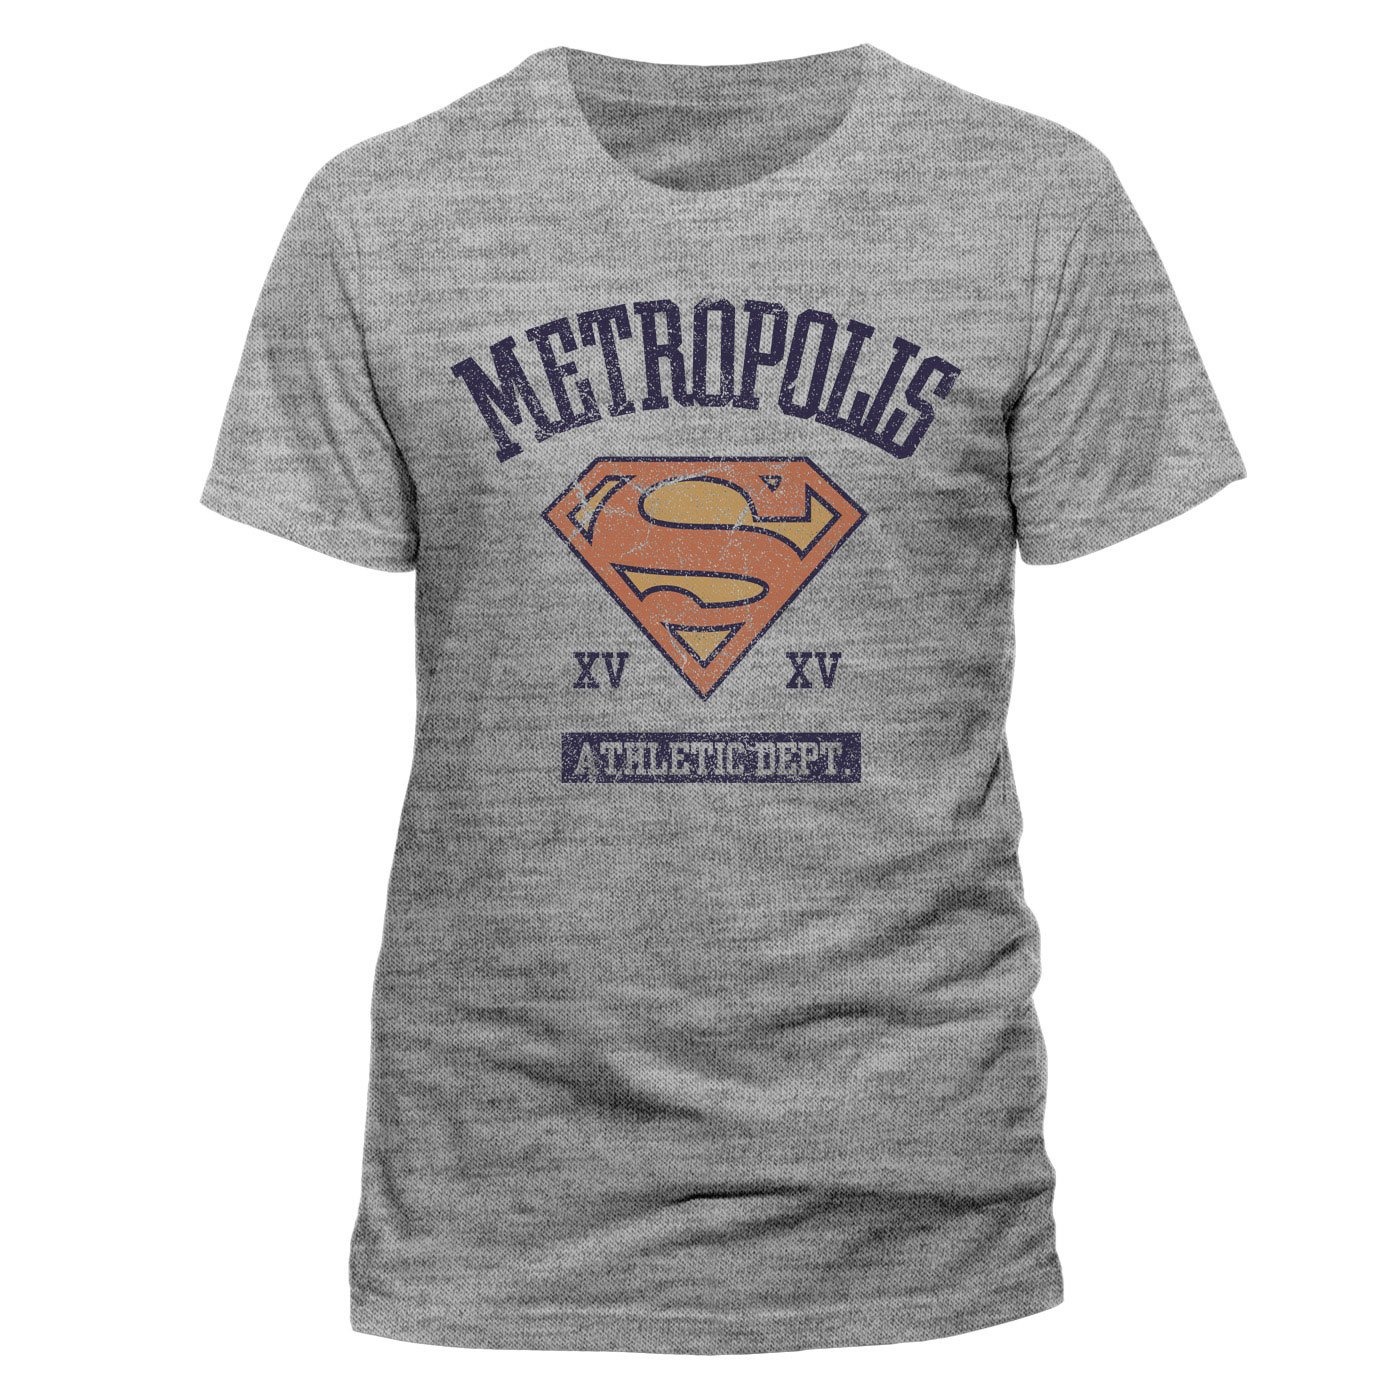 Supergirl T-Shirt Athletic Depart Size S